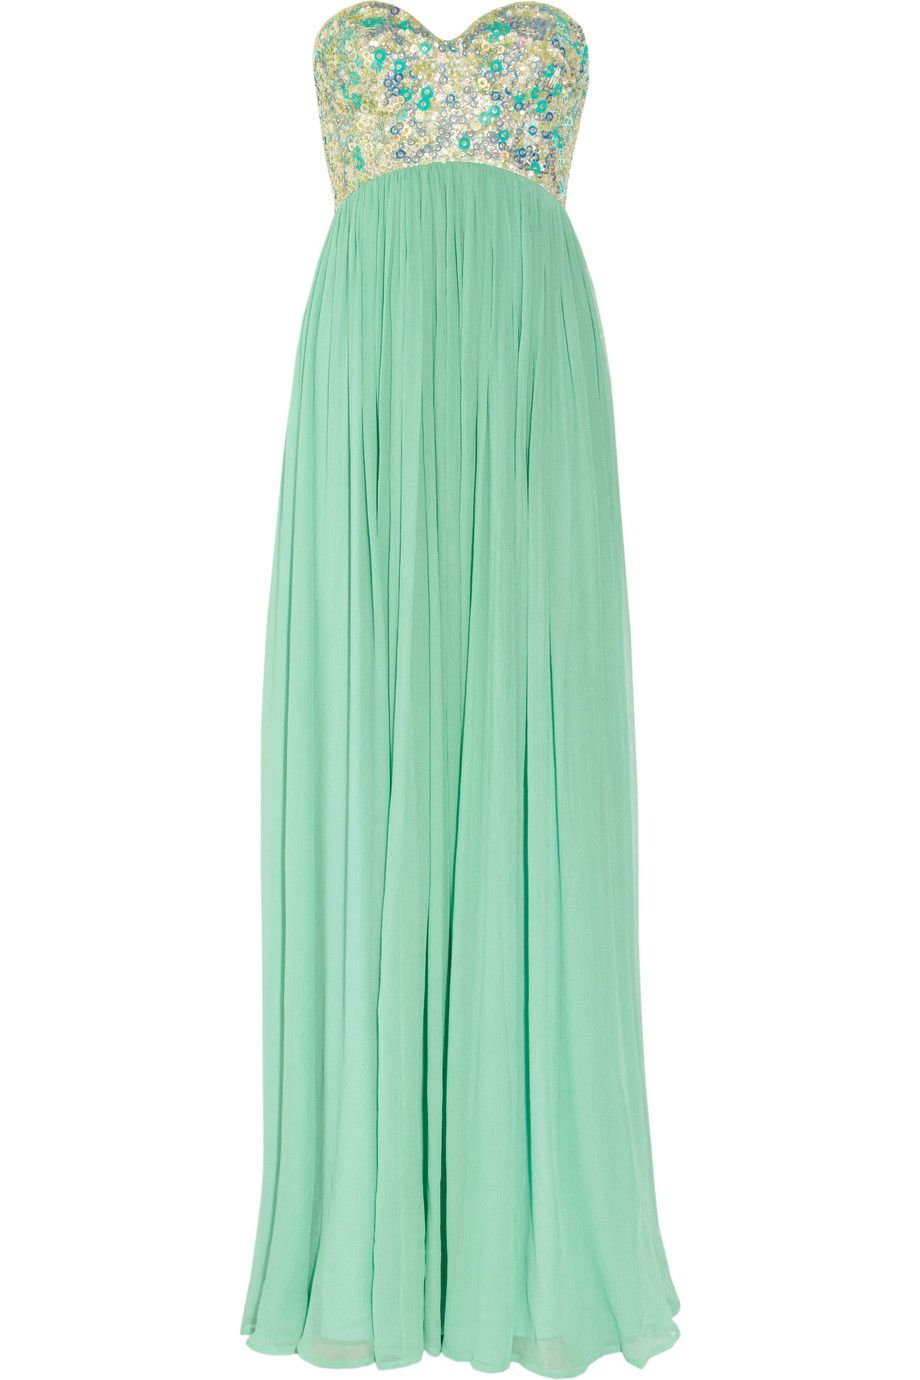 Rachel Gilbert Sonya Sequined-Bodice Silk-Crepe Gown. I love it ...